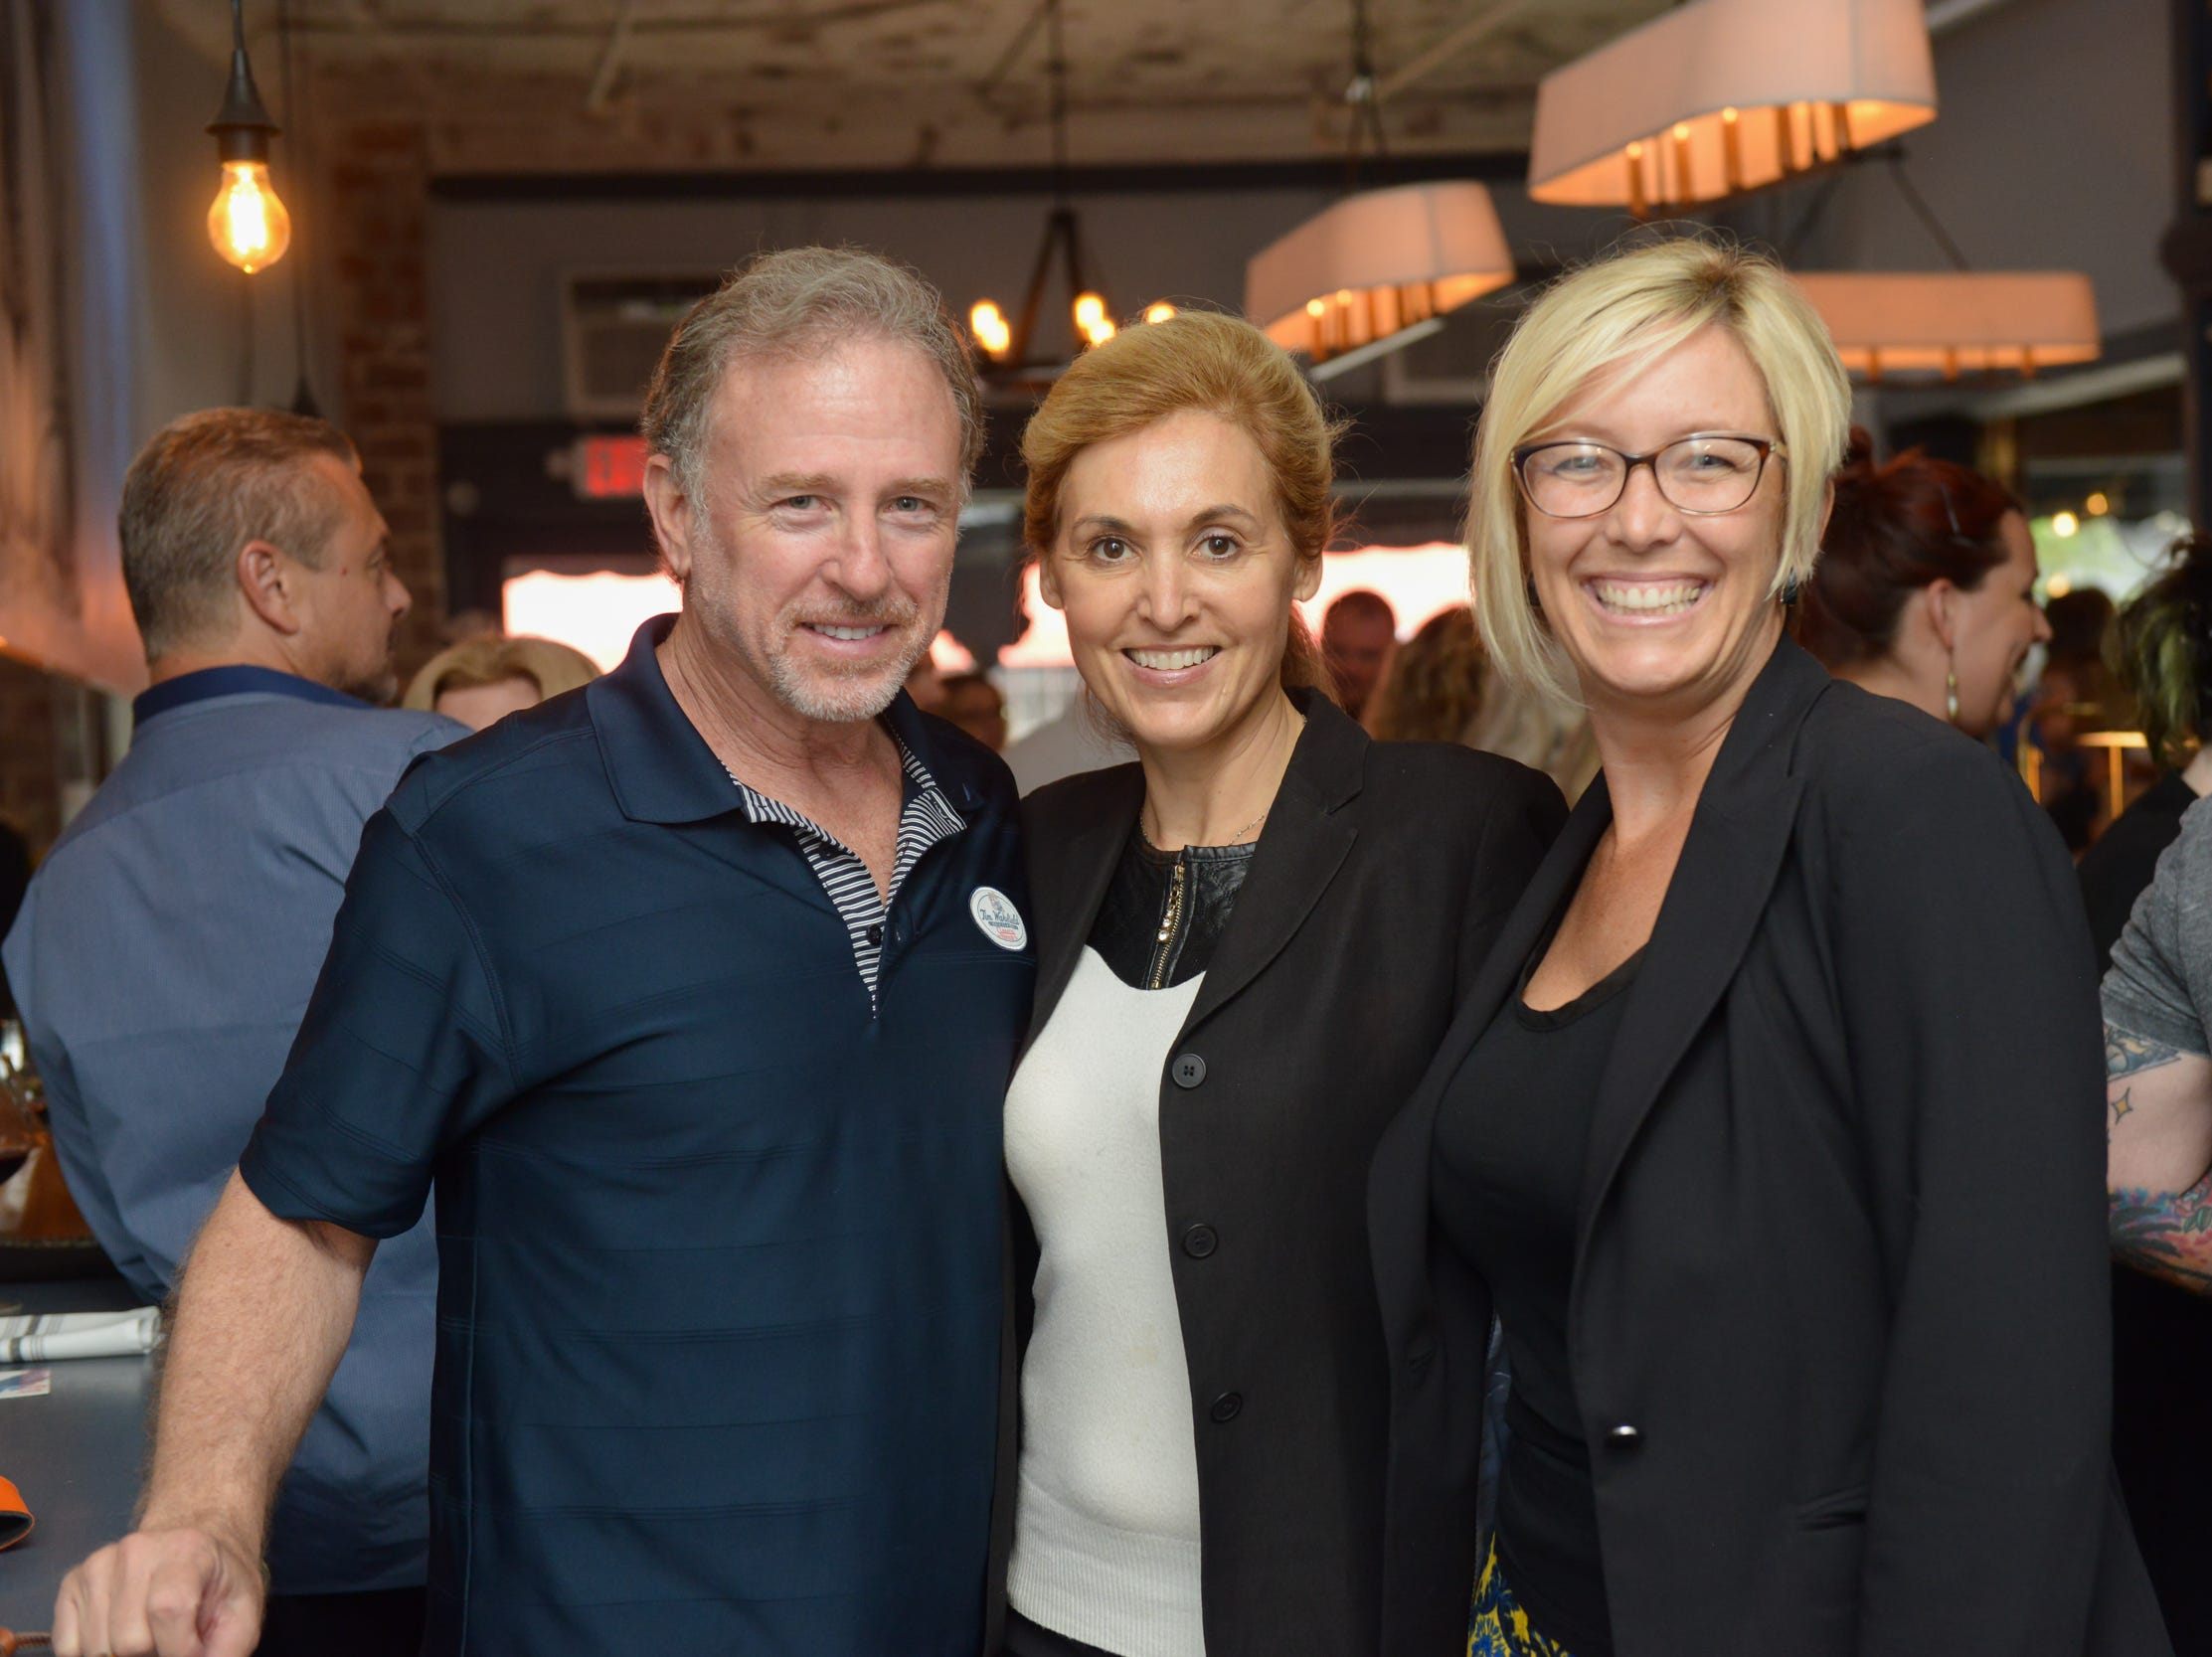 Larry Finkelstein, Valerie Bruel and Barbara Widerman at a community gathering to kick off Shark Week, hosted by Florida Today at Crush XI in downtown Melbourne.